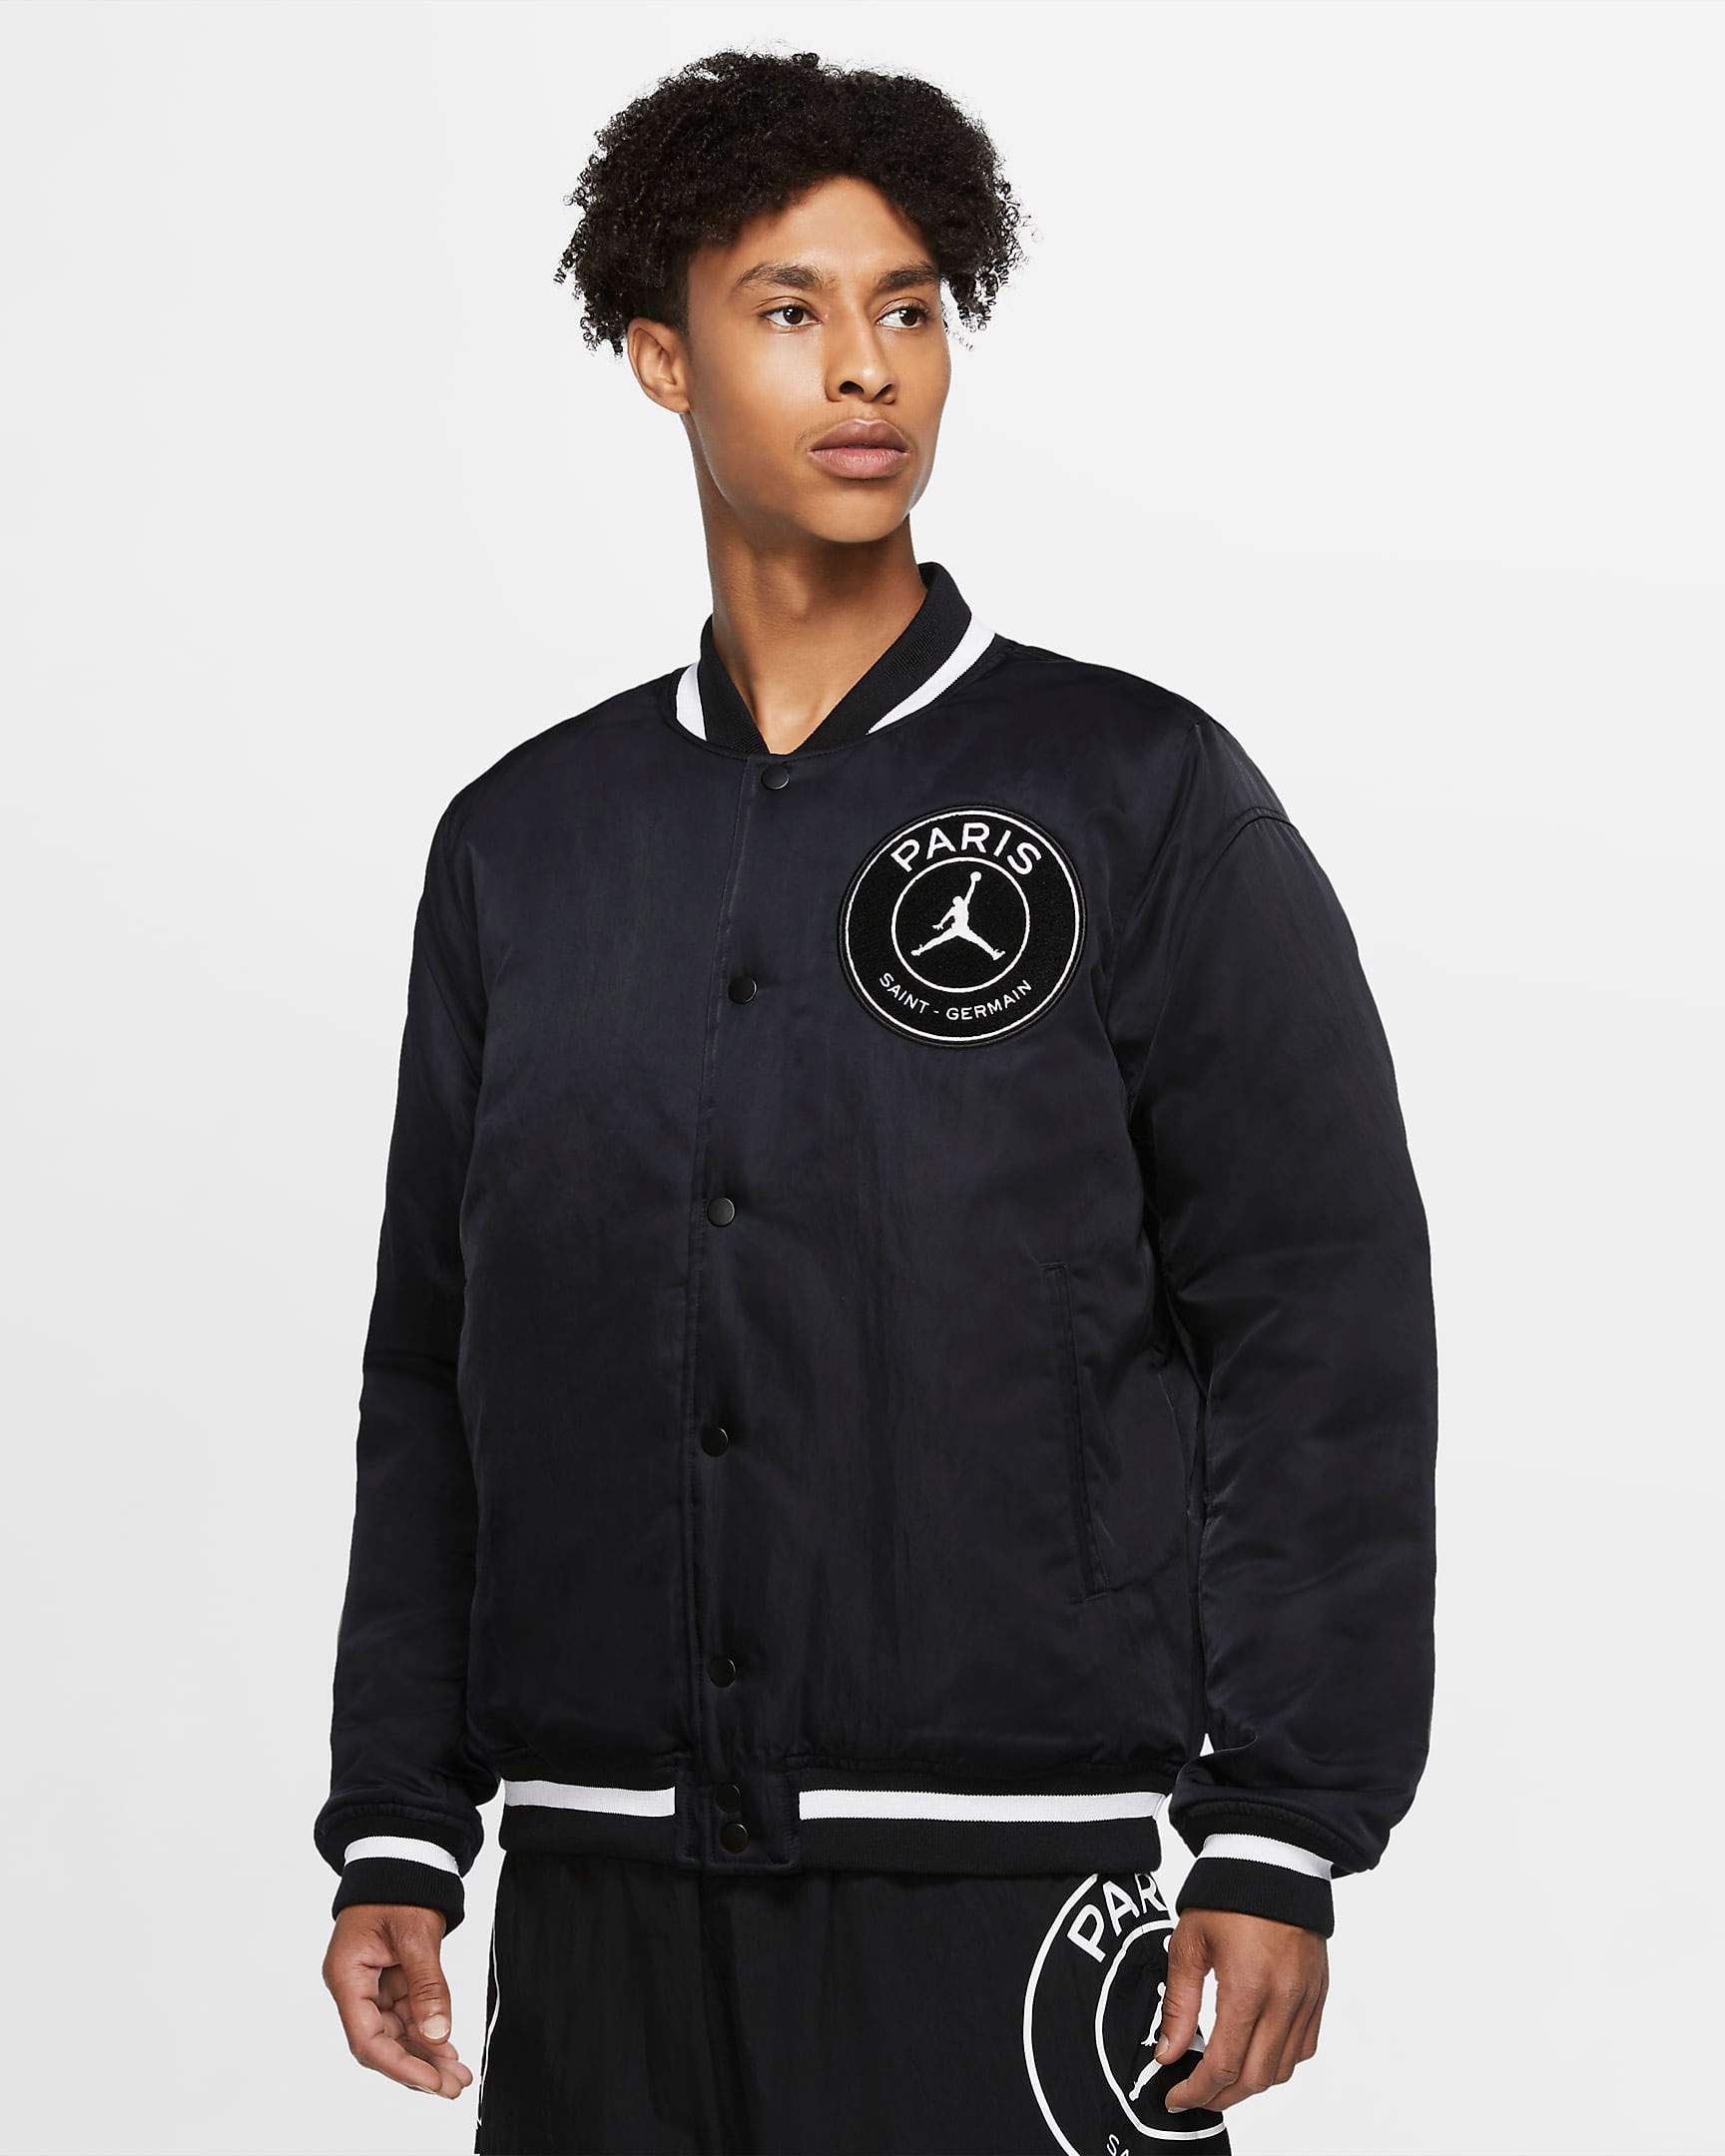 jordan-psg-paris-saint-germain-varsity-jacket-black-1